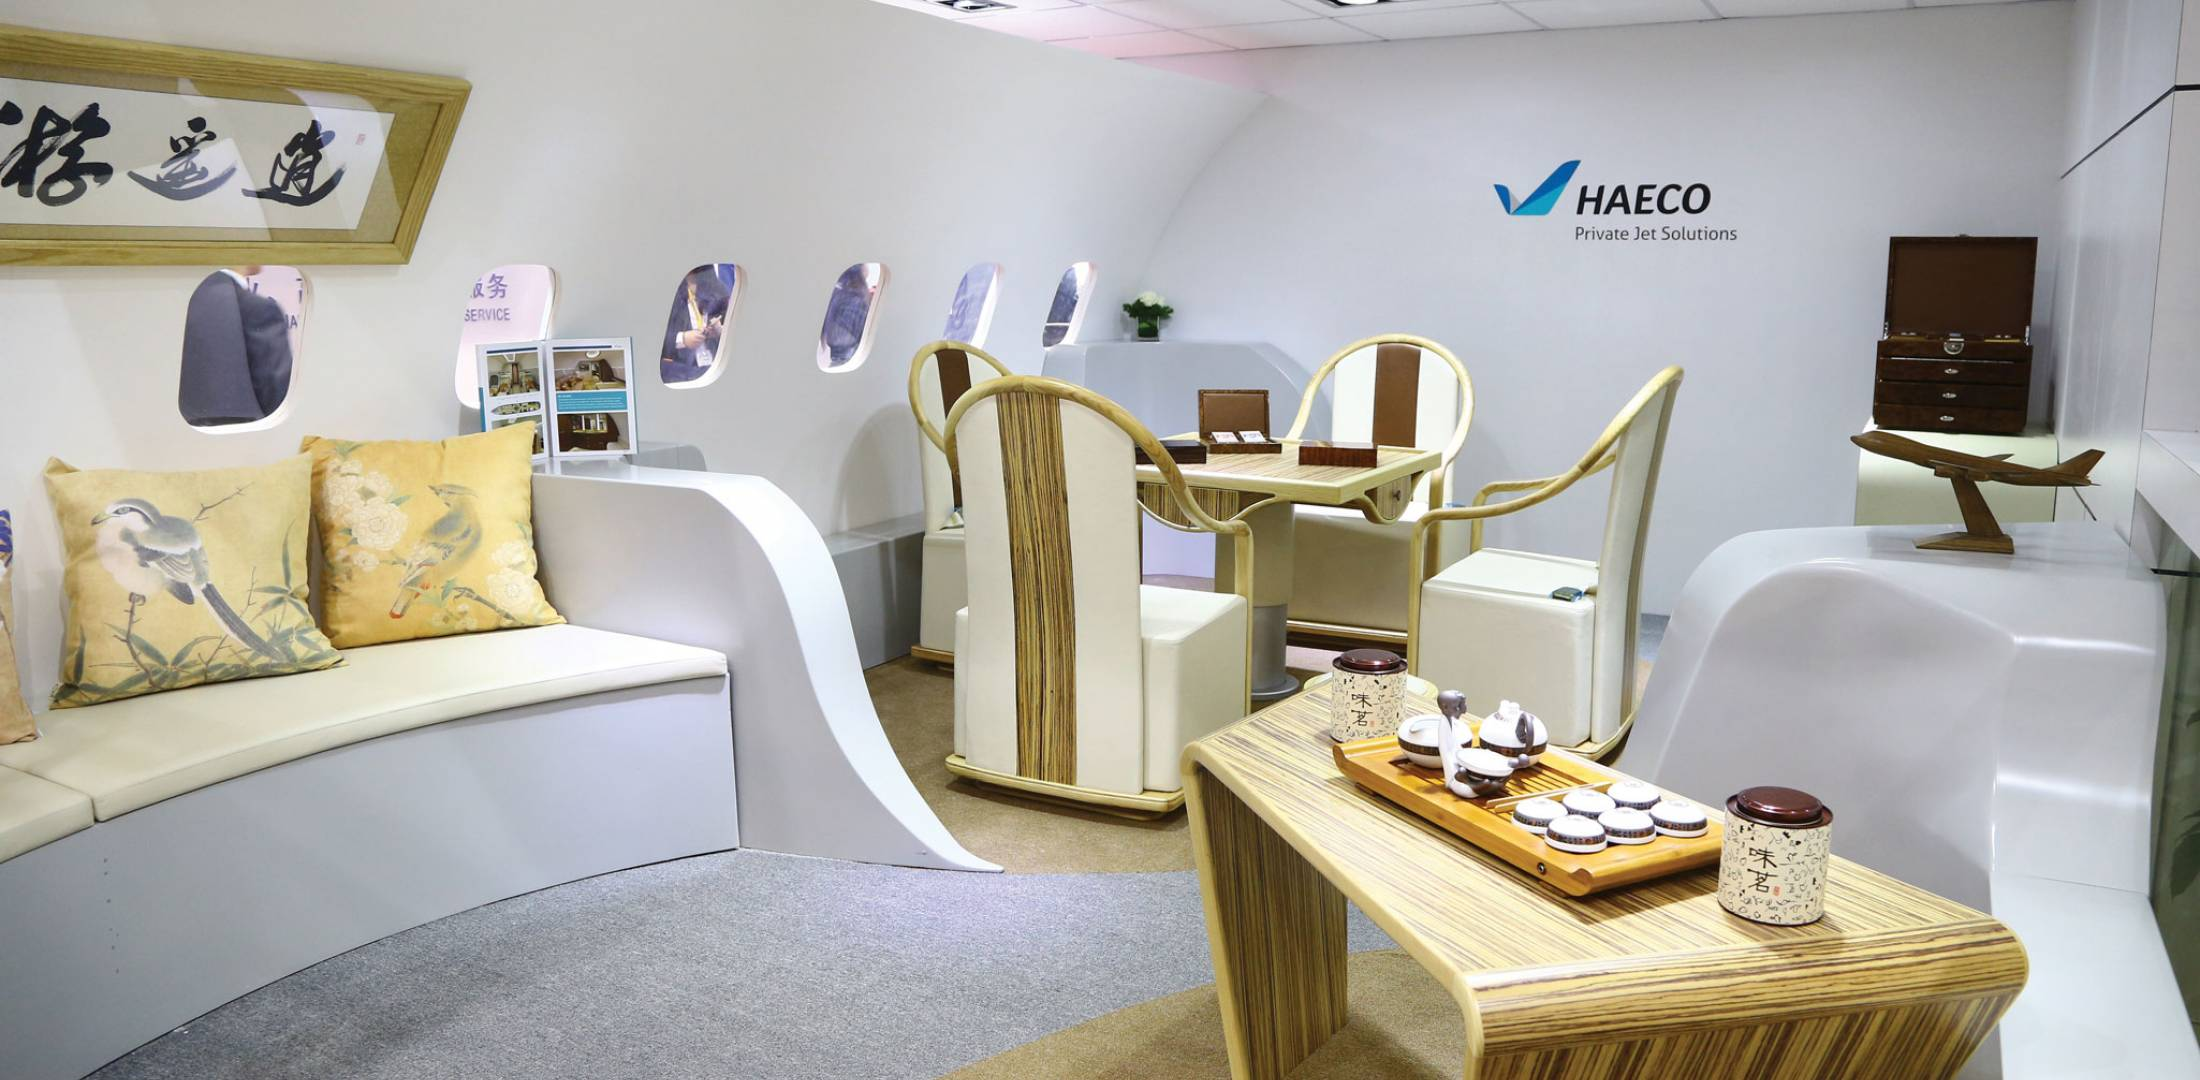 Rended Haeco Shows Eastern-themed VIP interiors | Business ... on technology show, home repair show, jewelry show, home light show, crafts show, home delivery show, home art show, home show giveaways, food show, lighting show, office show,